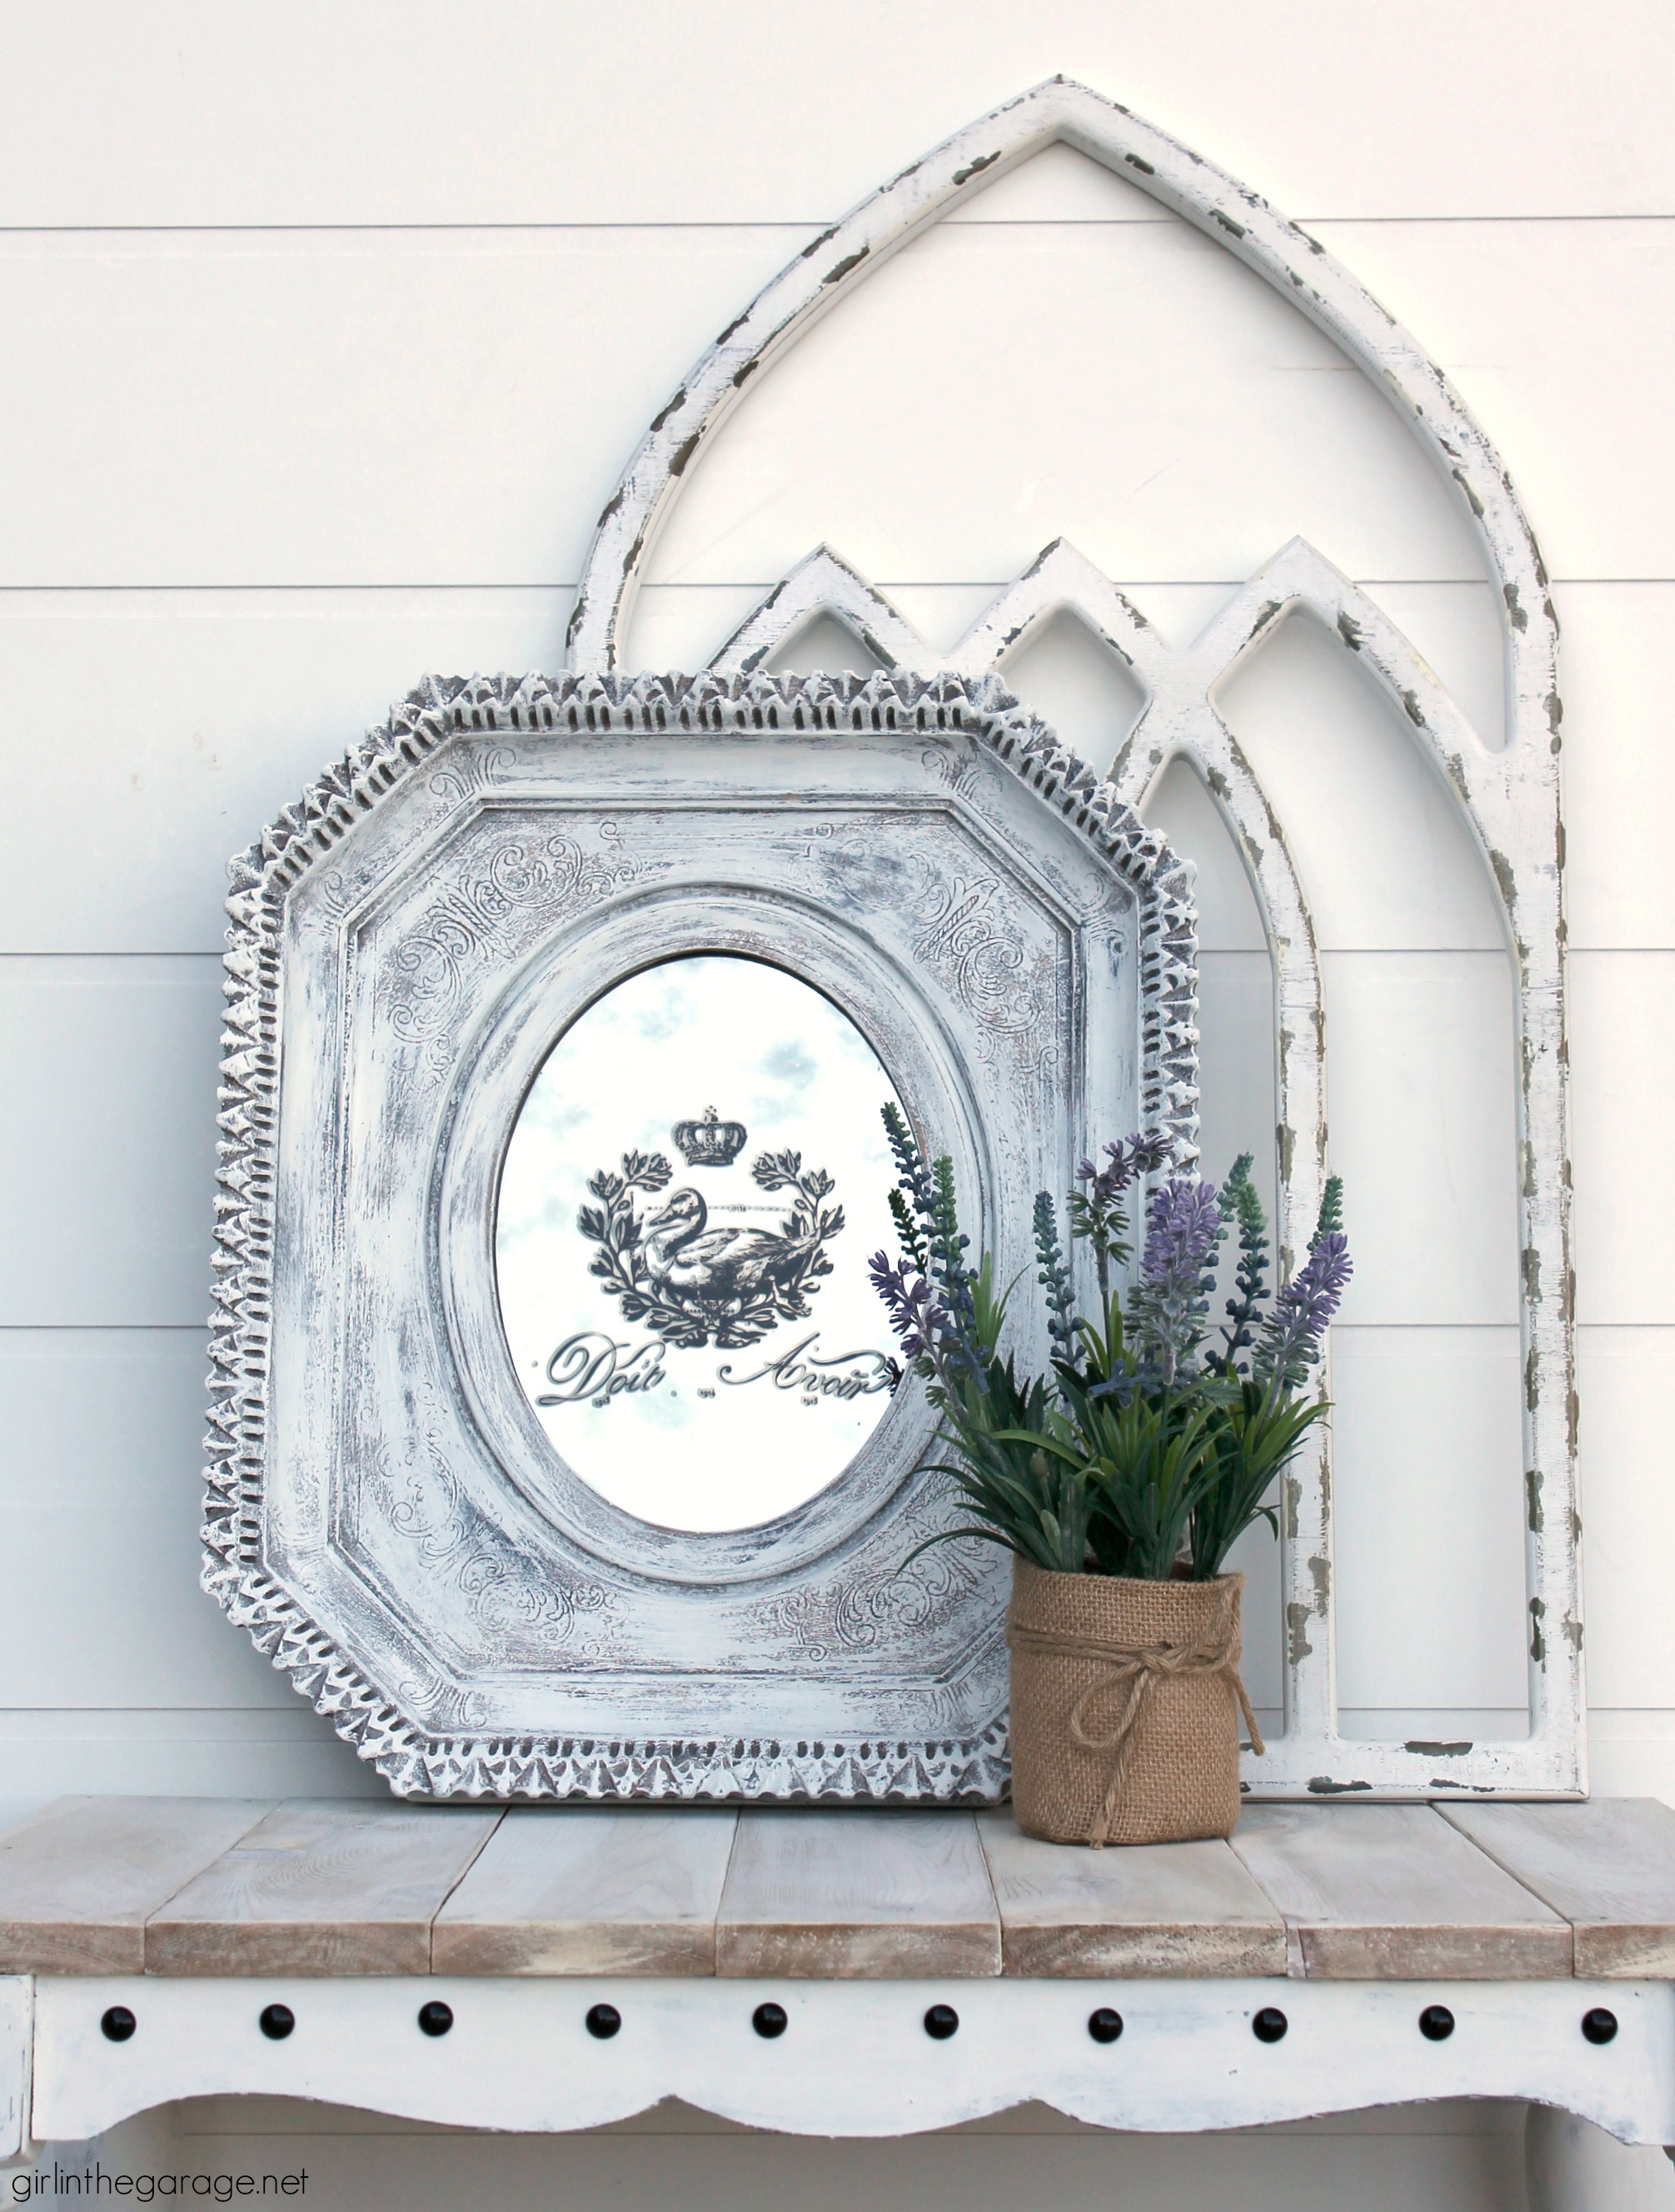 Thrifted mirror makeover with image transfer - Girl in the Garage